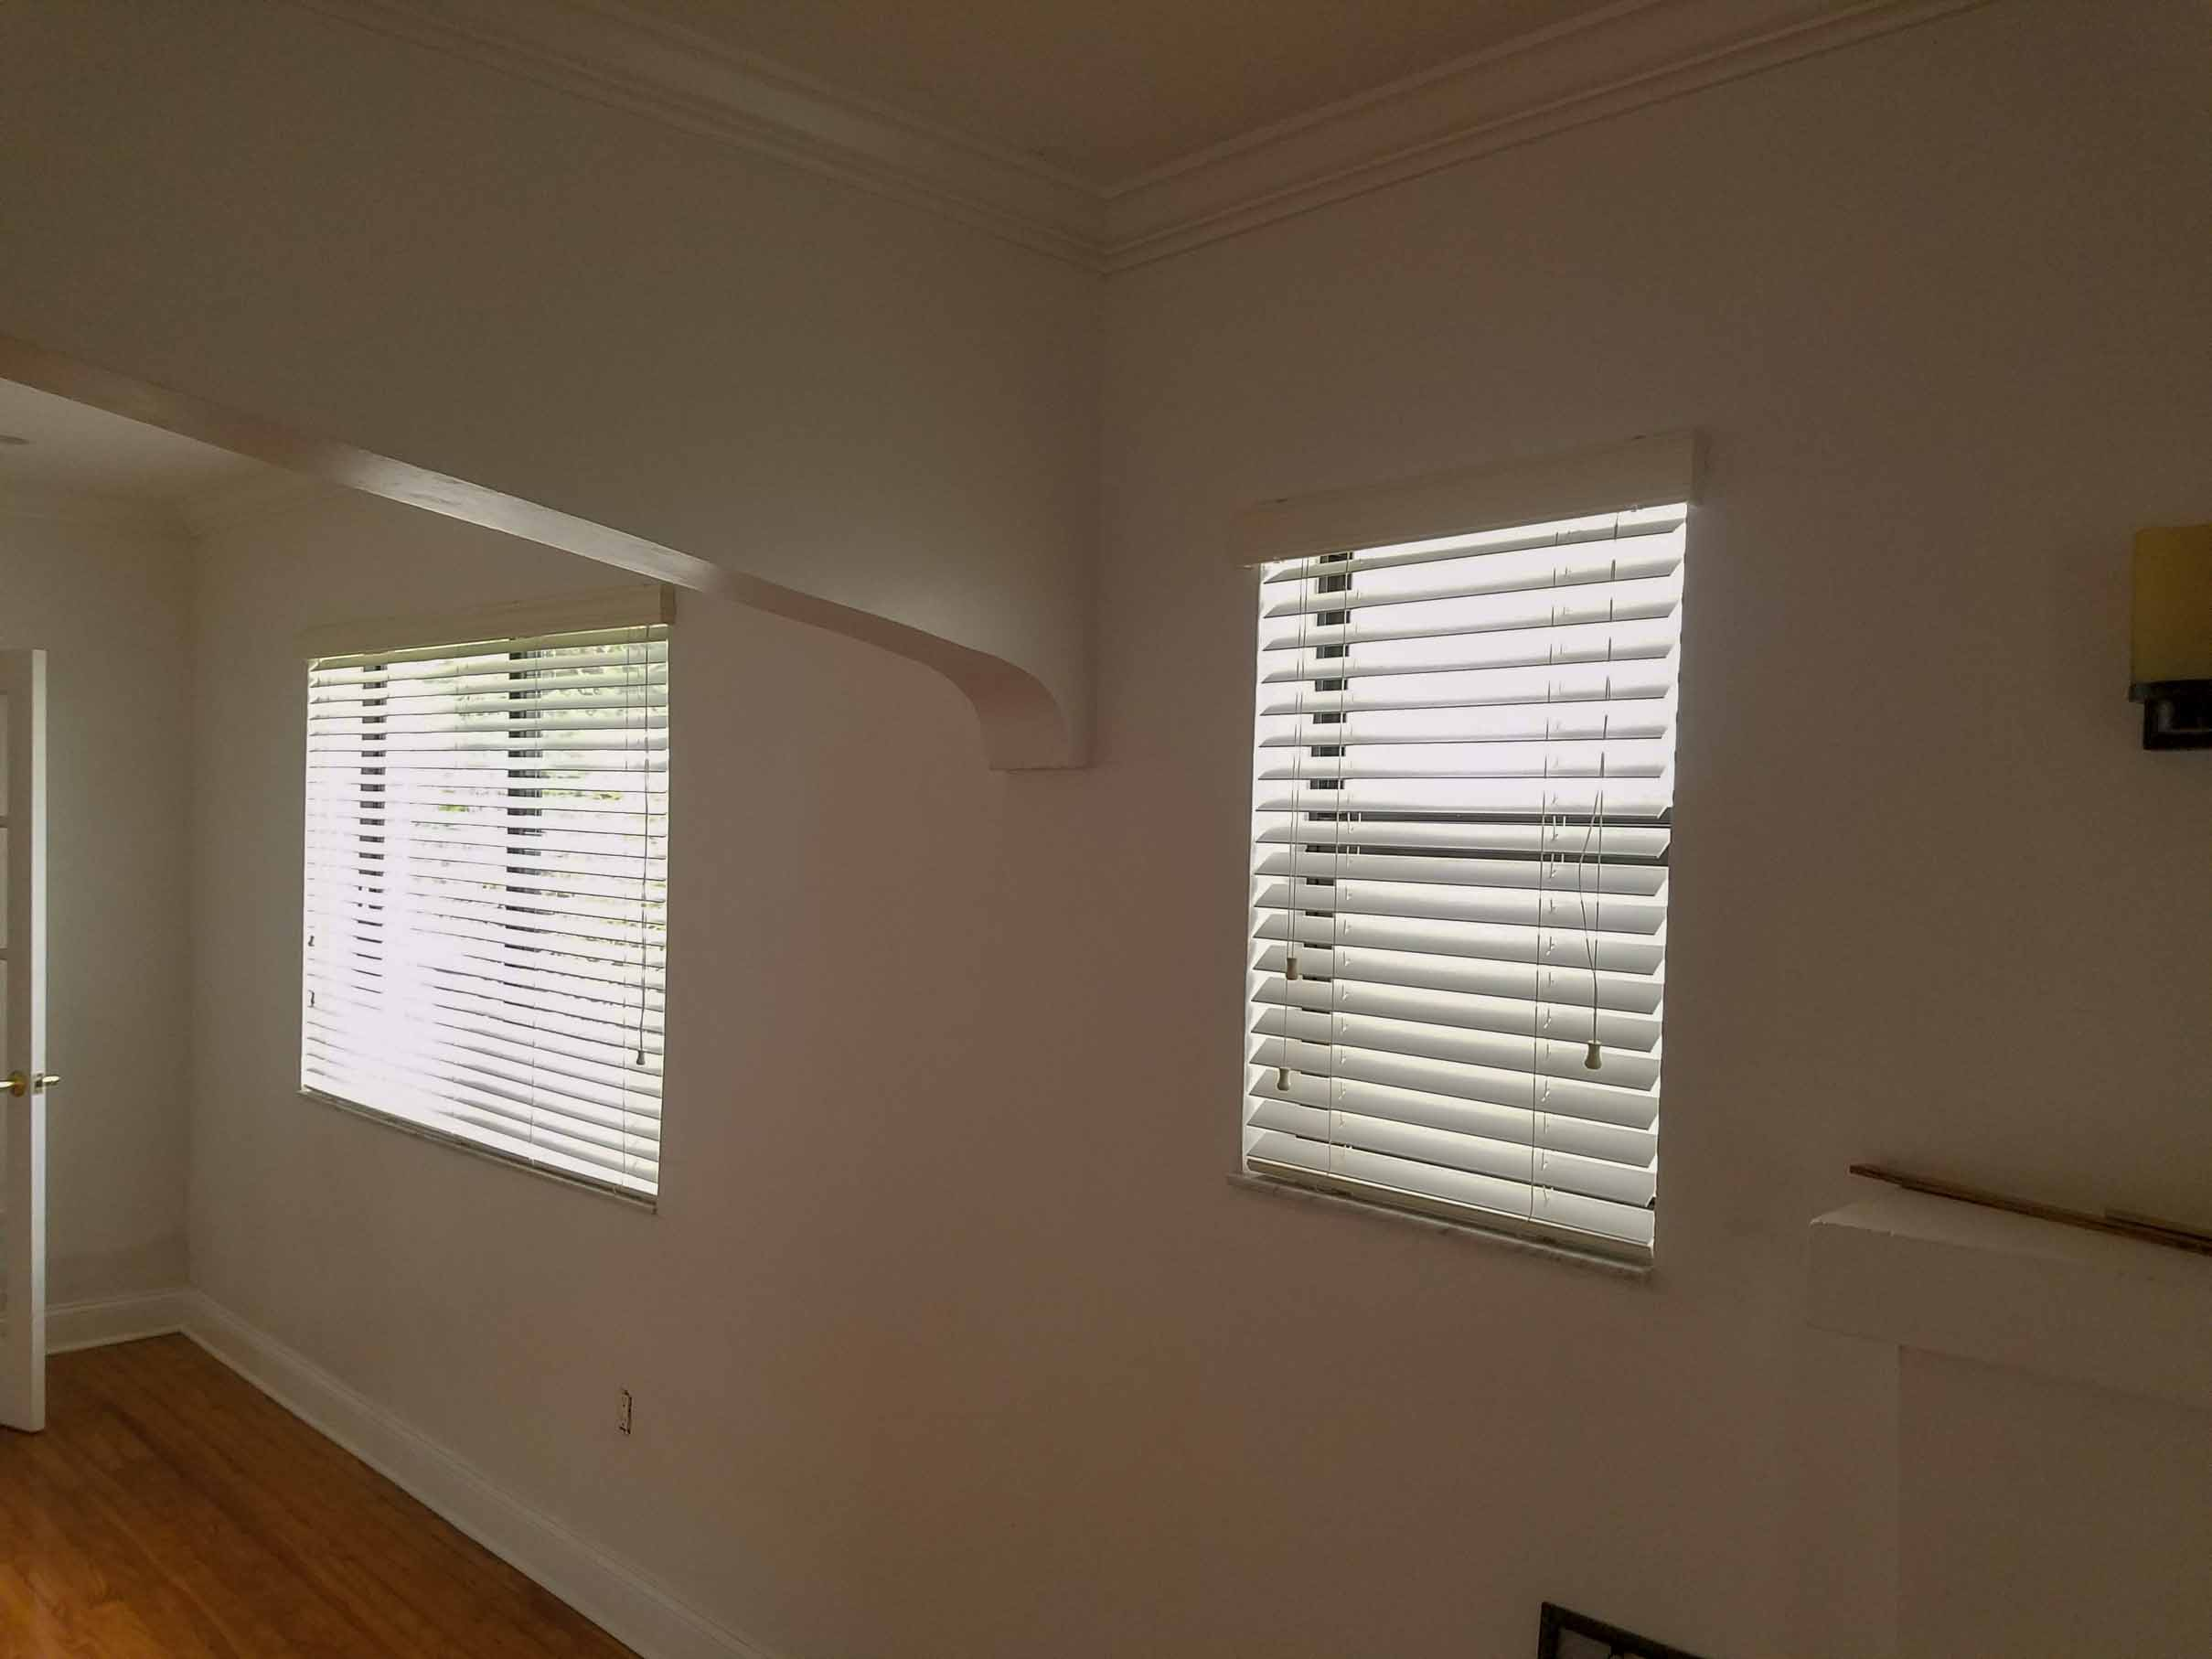 wood blinds gallery WOOD BLINDS GALLERY 20171102 134457